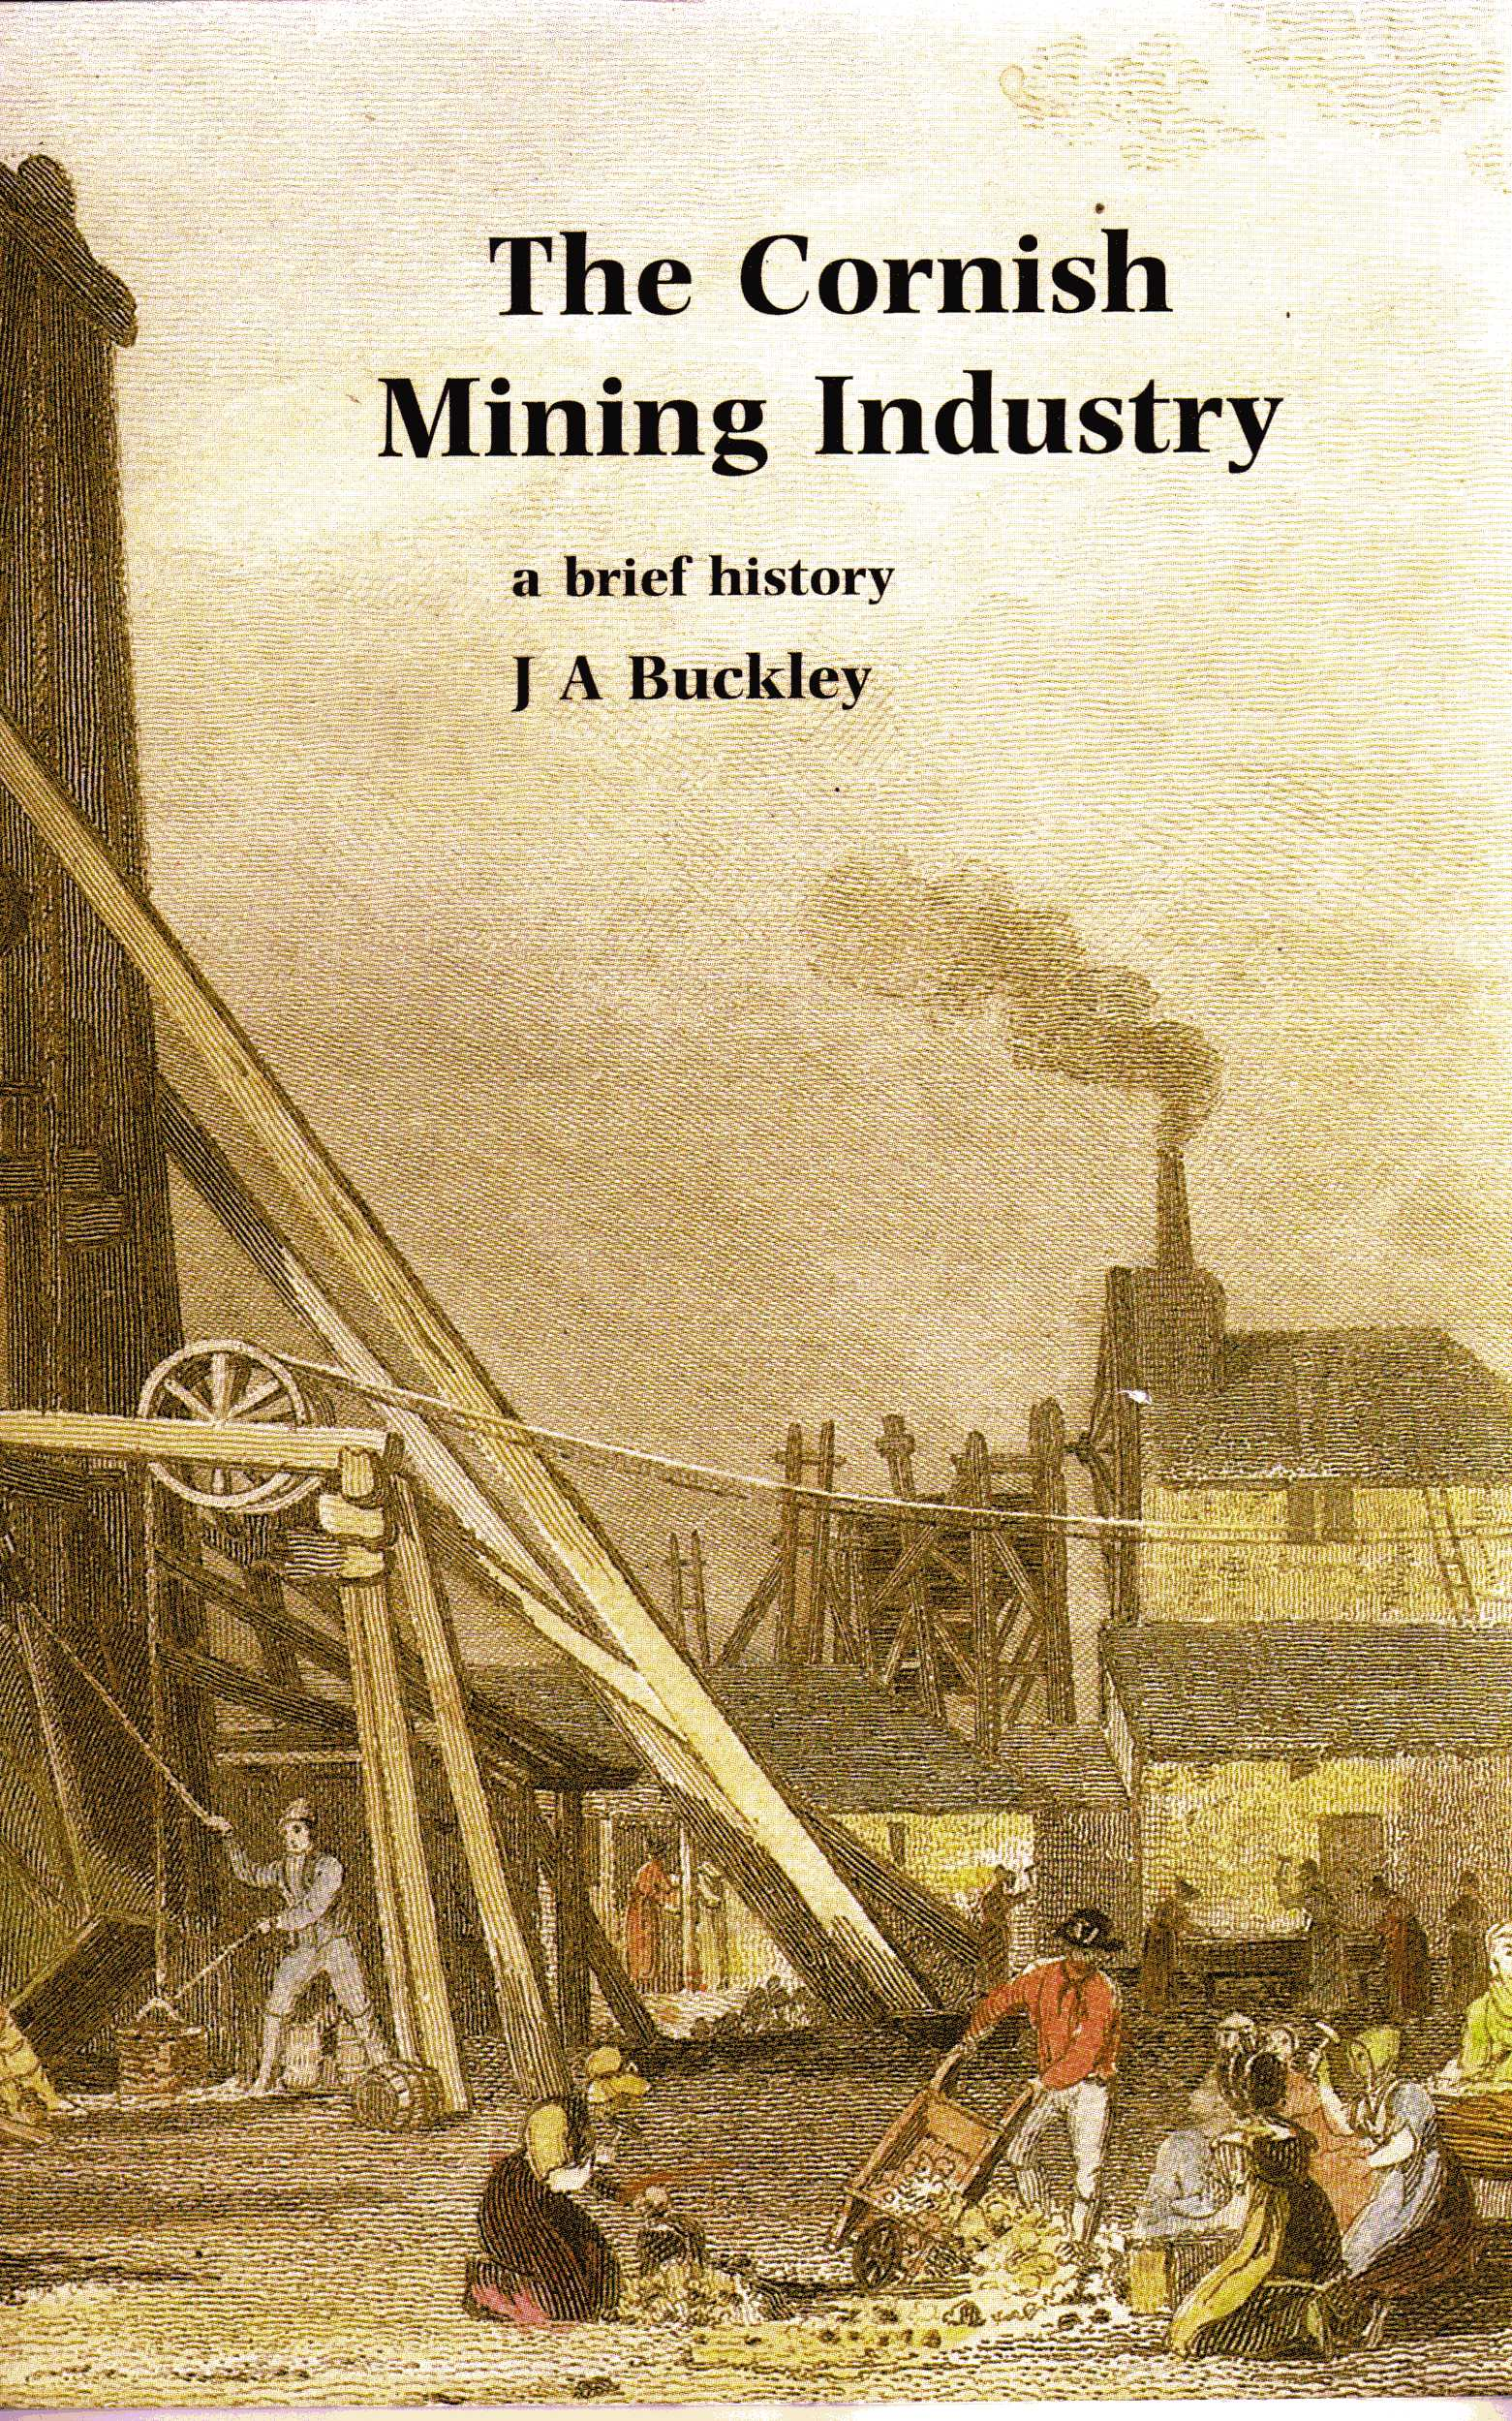 [USED] The Cornish Mining Industry - a brief history